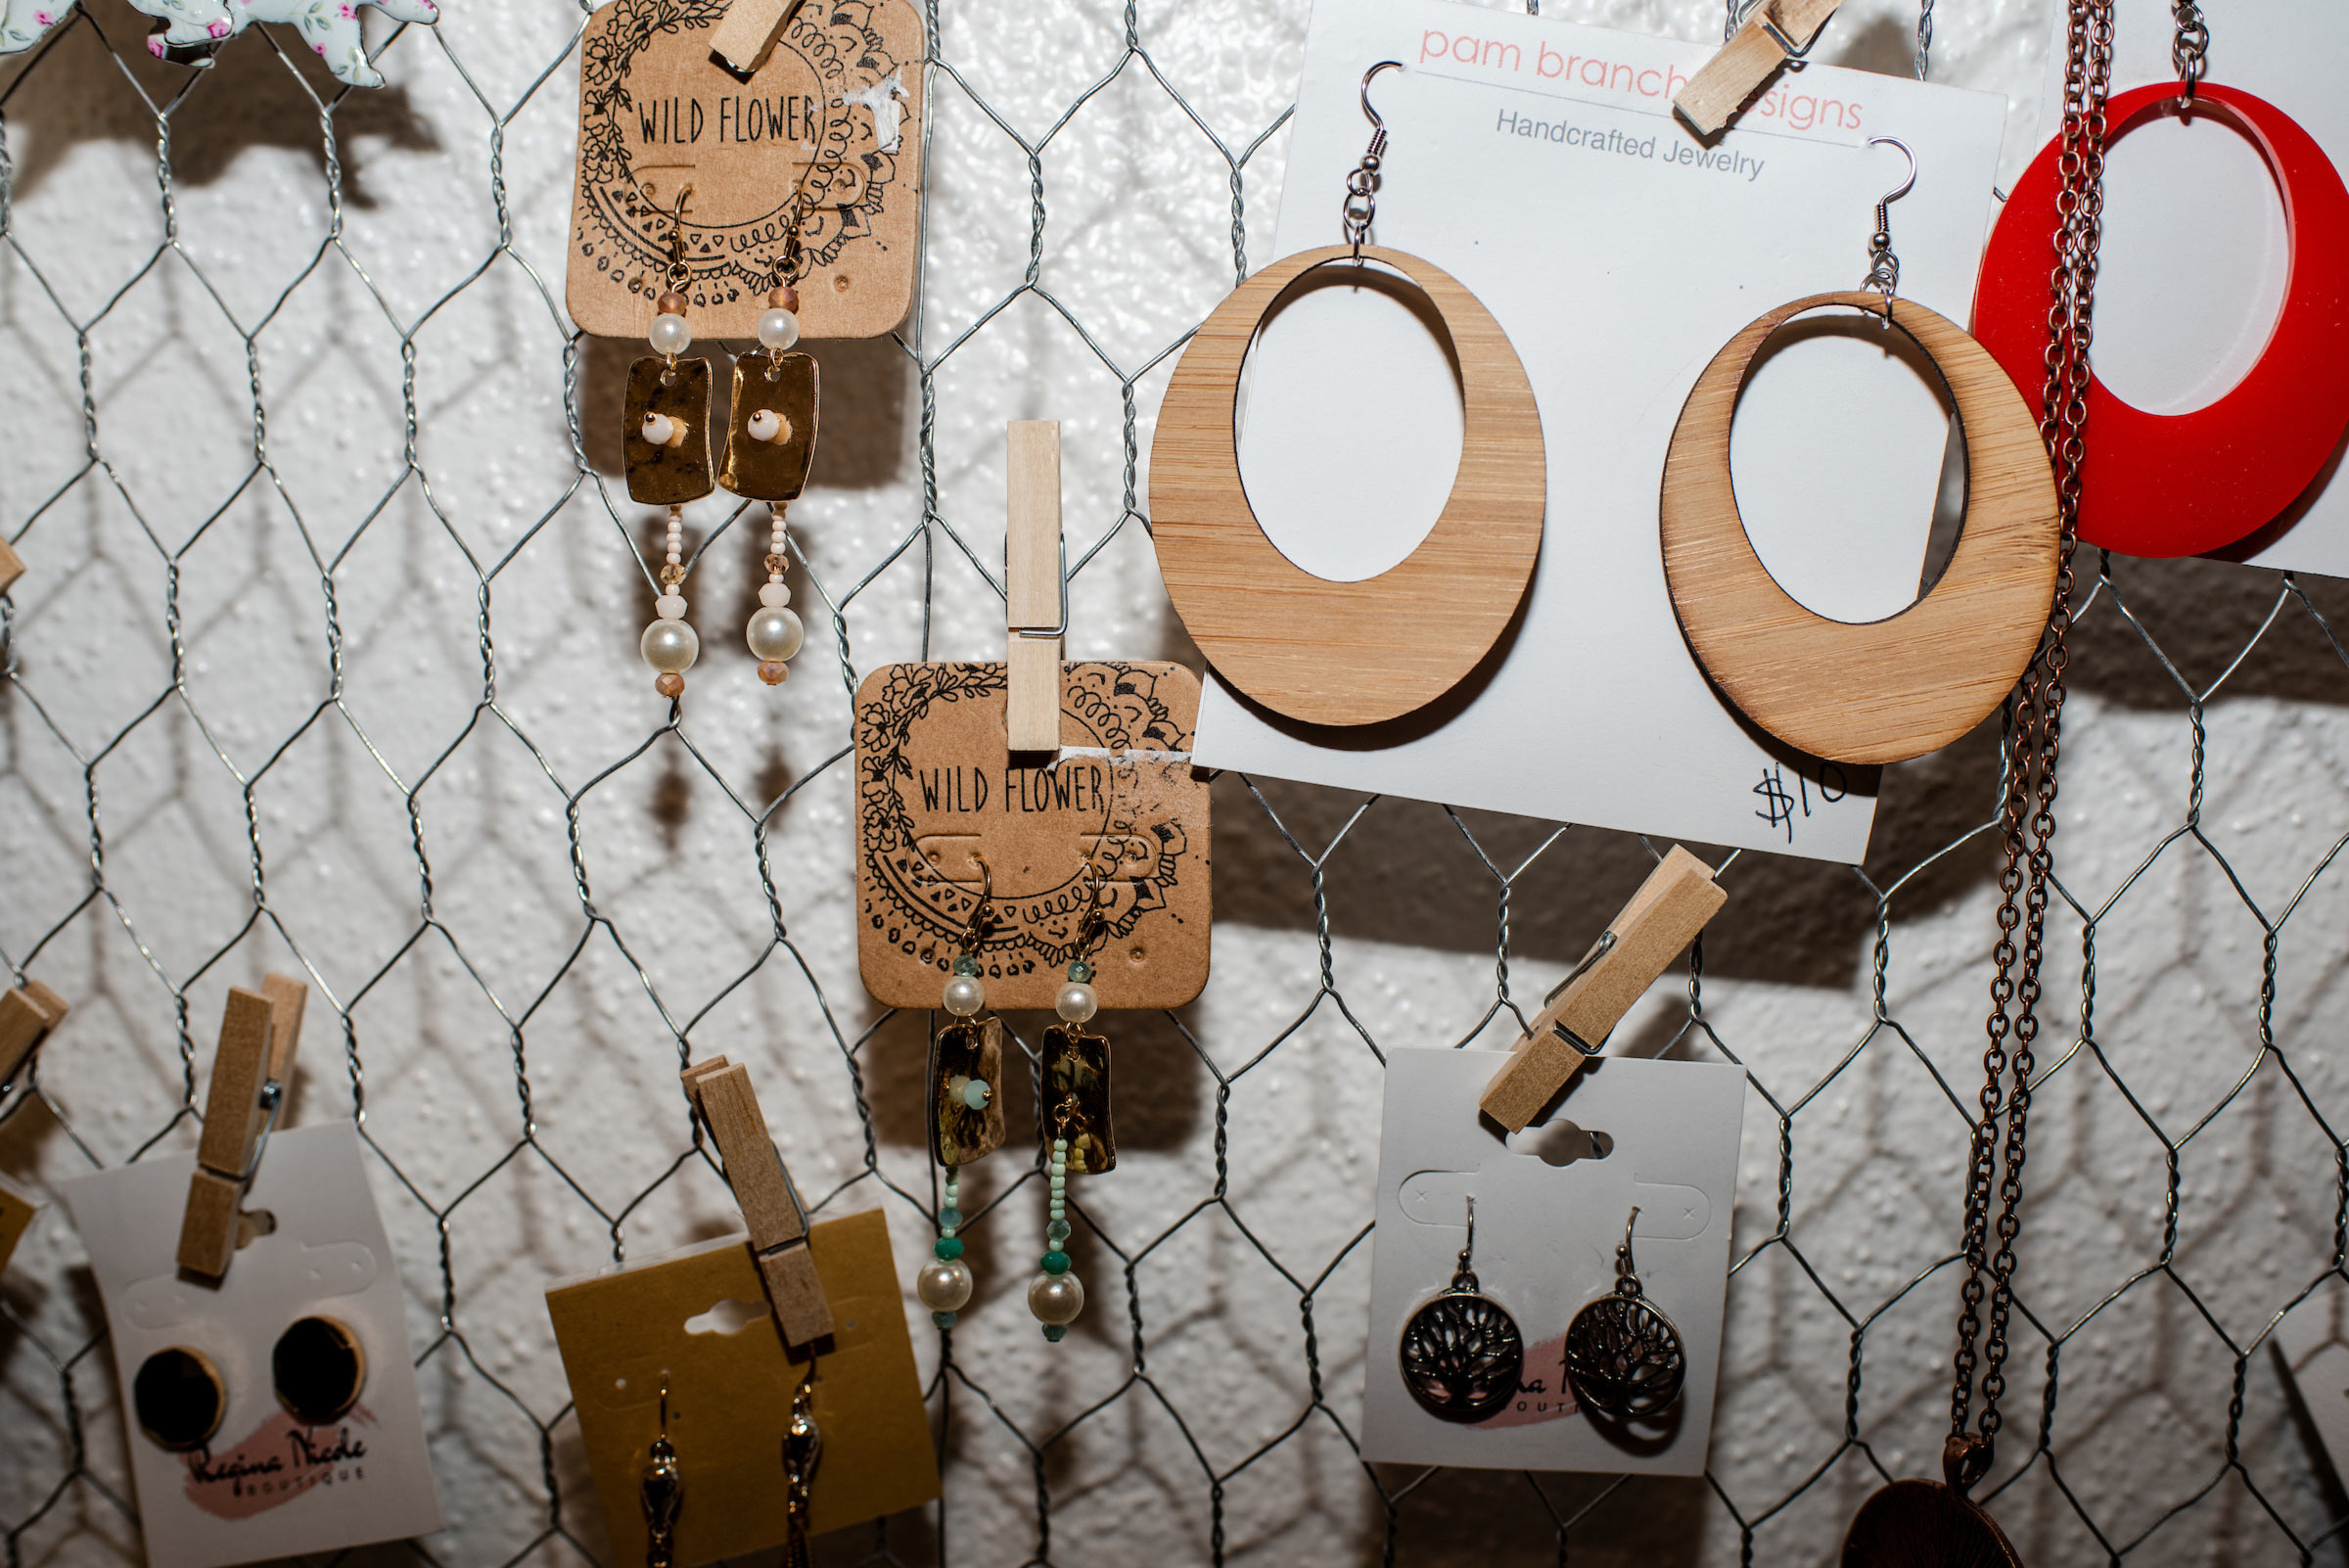 Photograph of earings from Natalie Newmans store